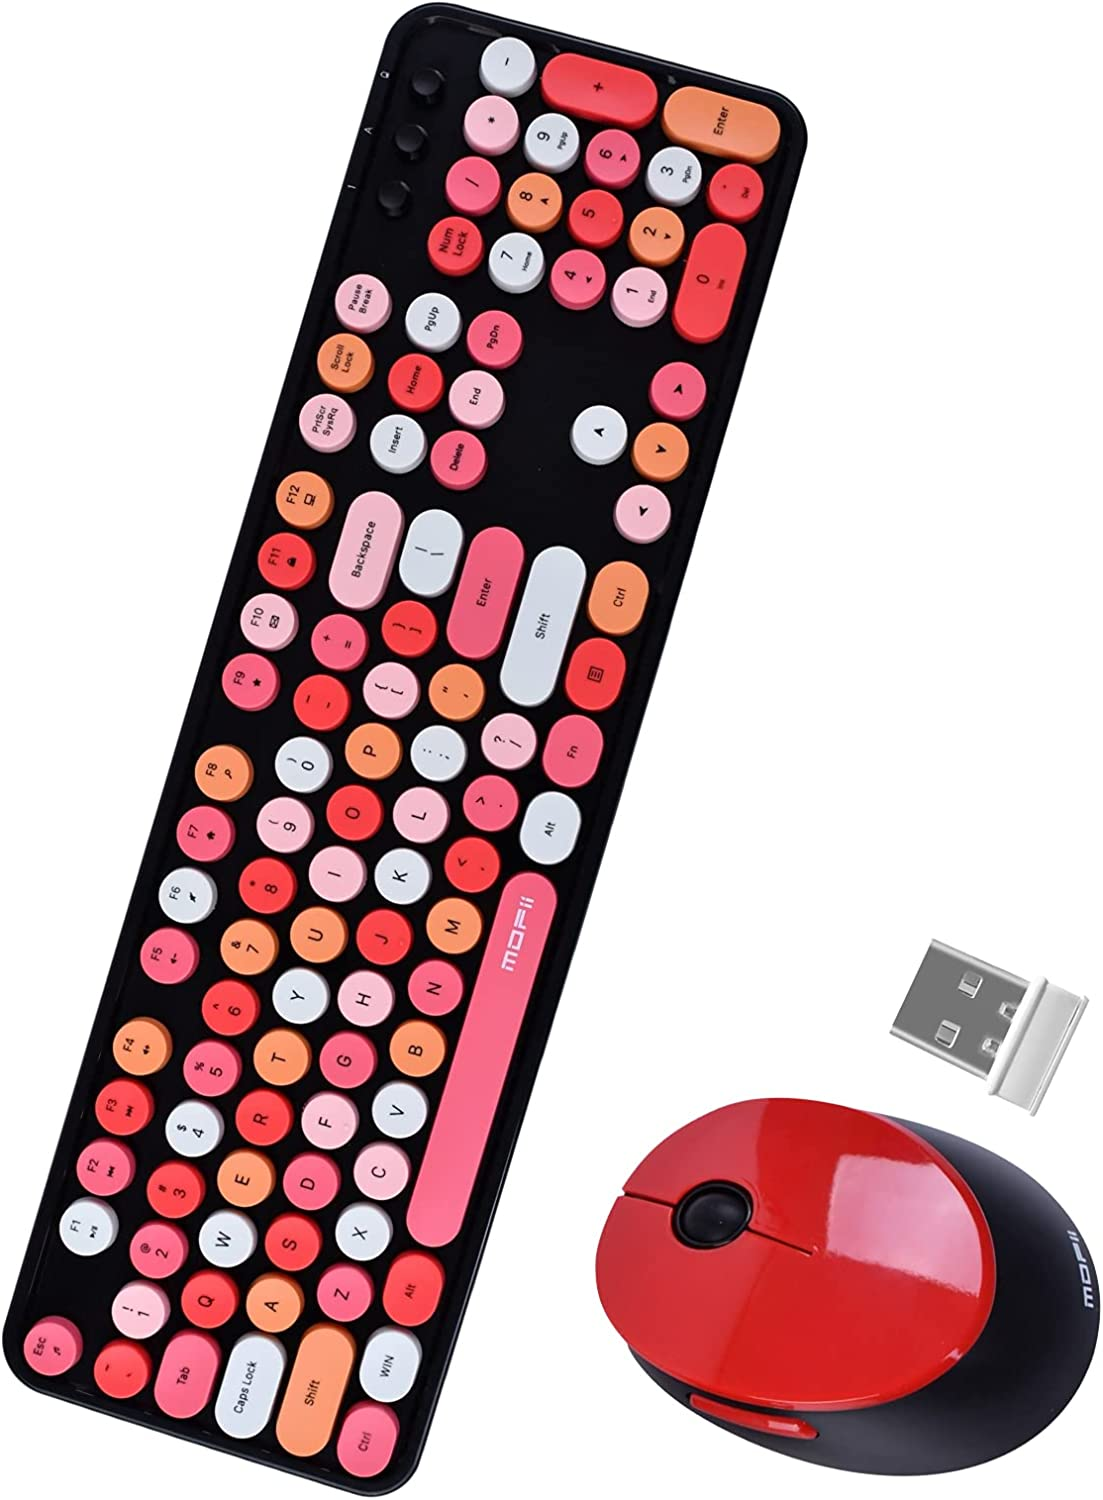 104-key Color Wireless Keyboard and Mouse Combination, Typewriter Key Office Keyboard, 2.4GHz Non-delay Connection and Optical Mouse Combination.(Red & Black Style)